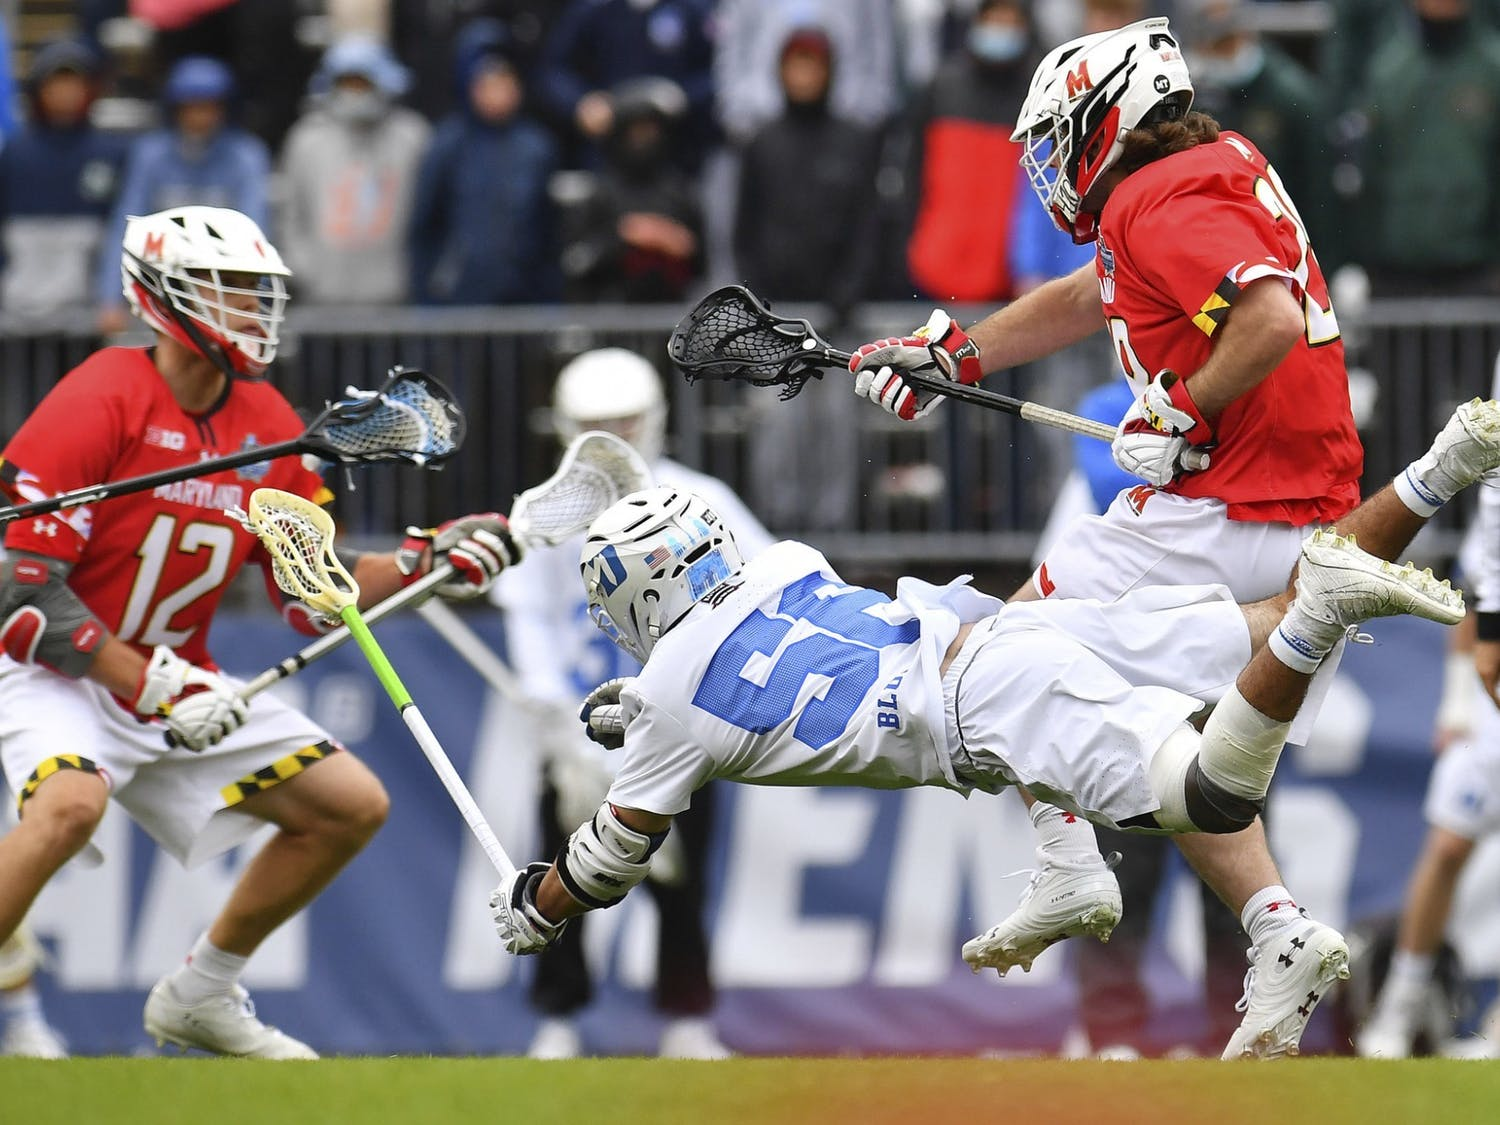 Despite Jake Naso's rise this season, the Blue Devils went just 10-for-22 on faceoffs in their 14-5 loss to Maryland.